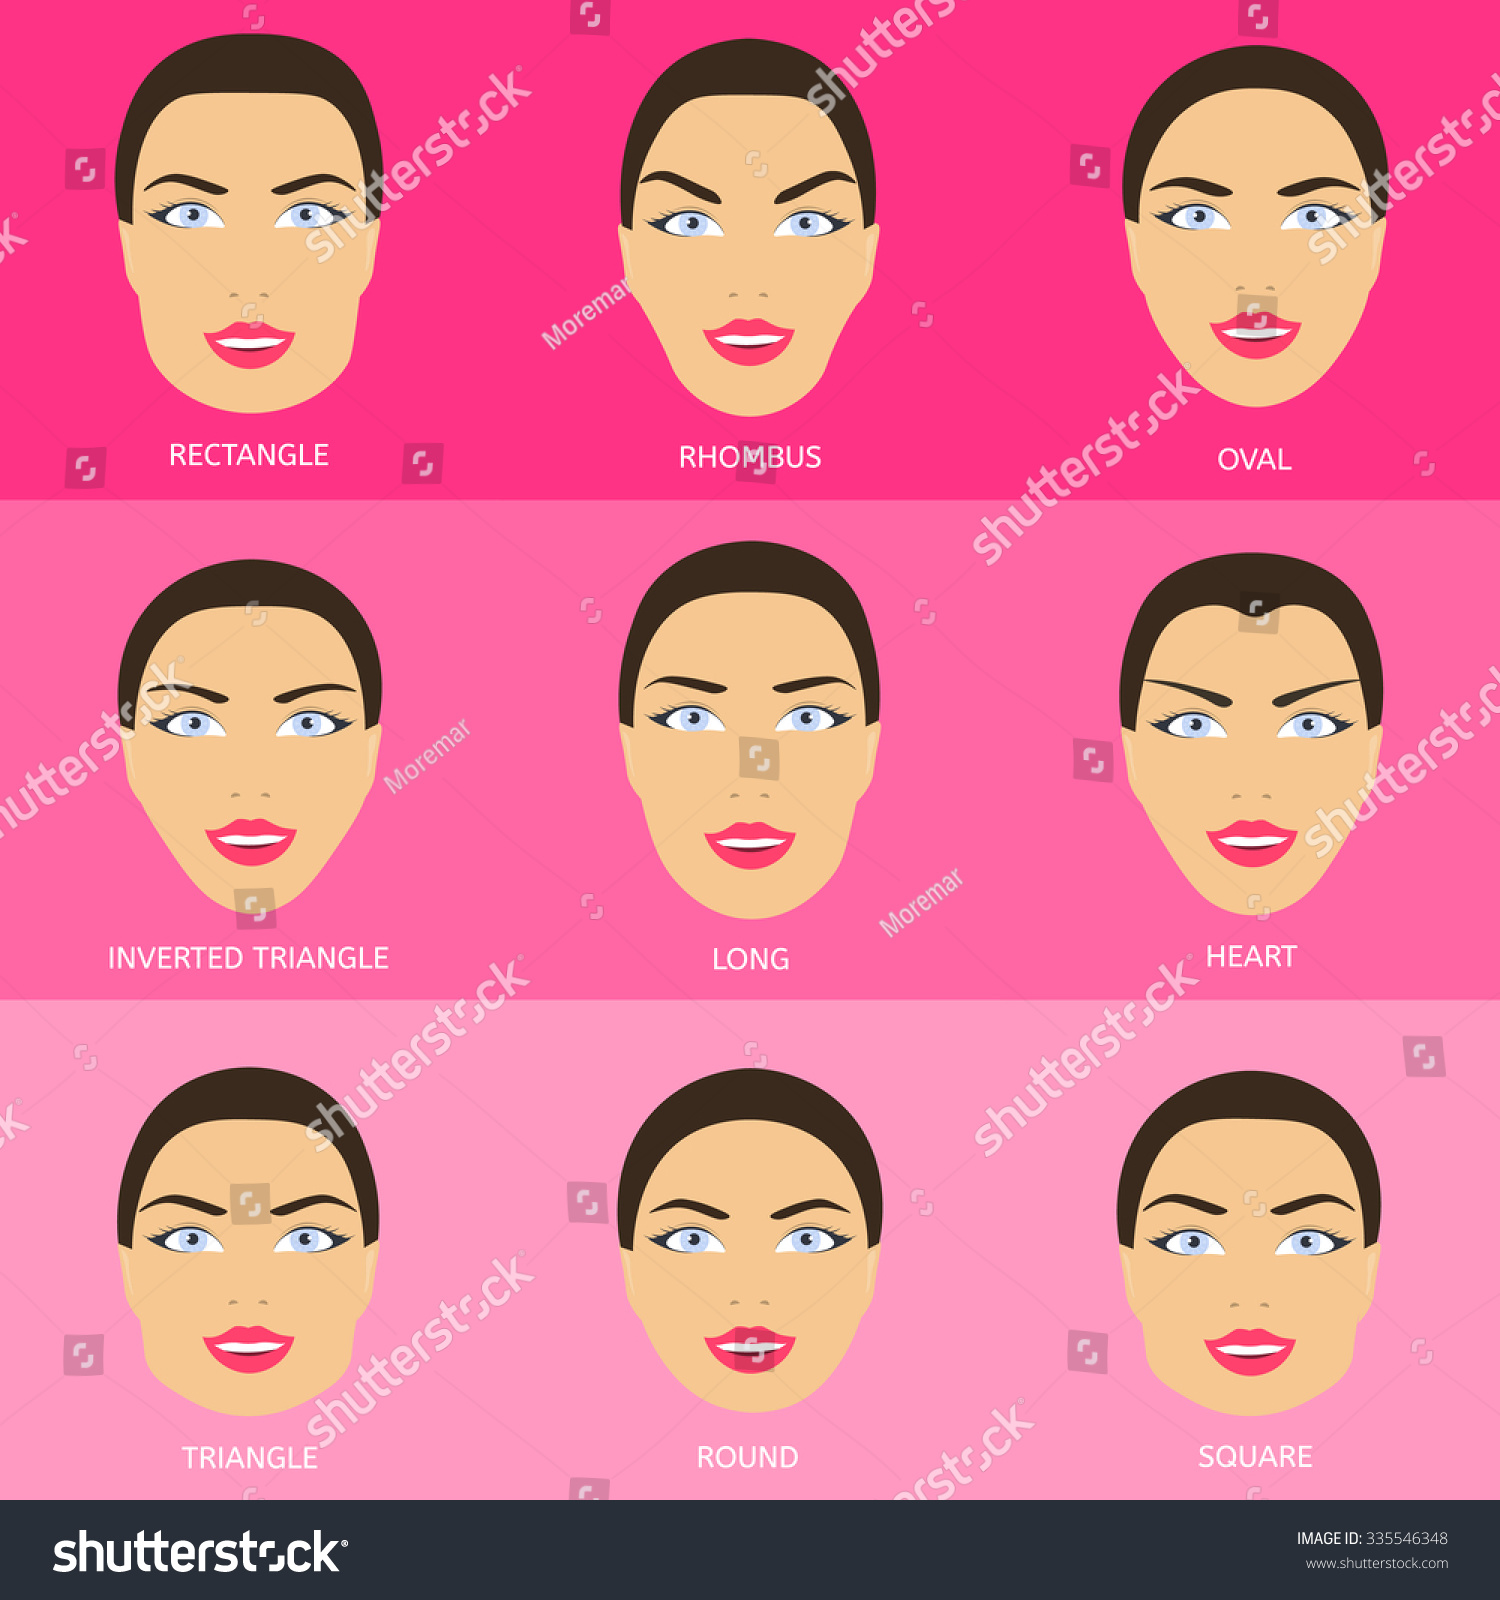 Royalty Free Eyebrow Shape For Different Face Shapes 335546348